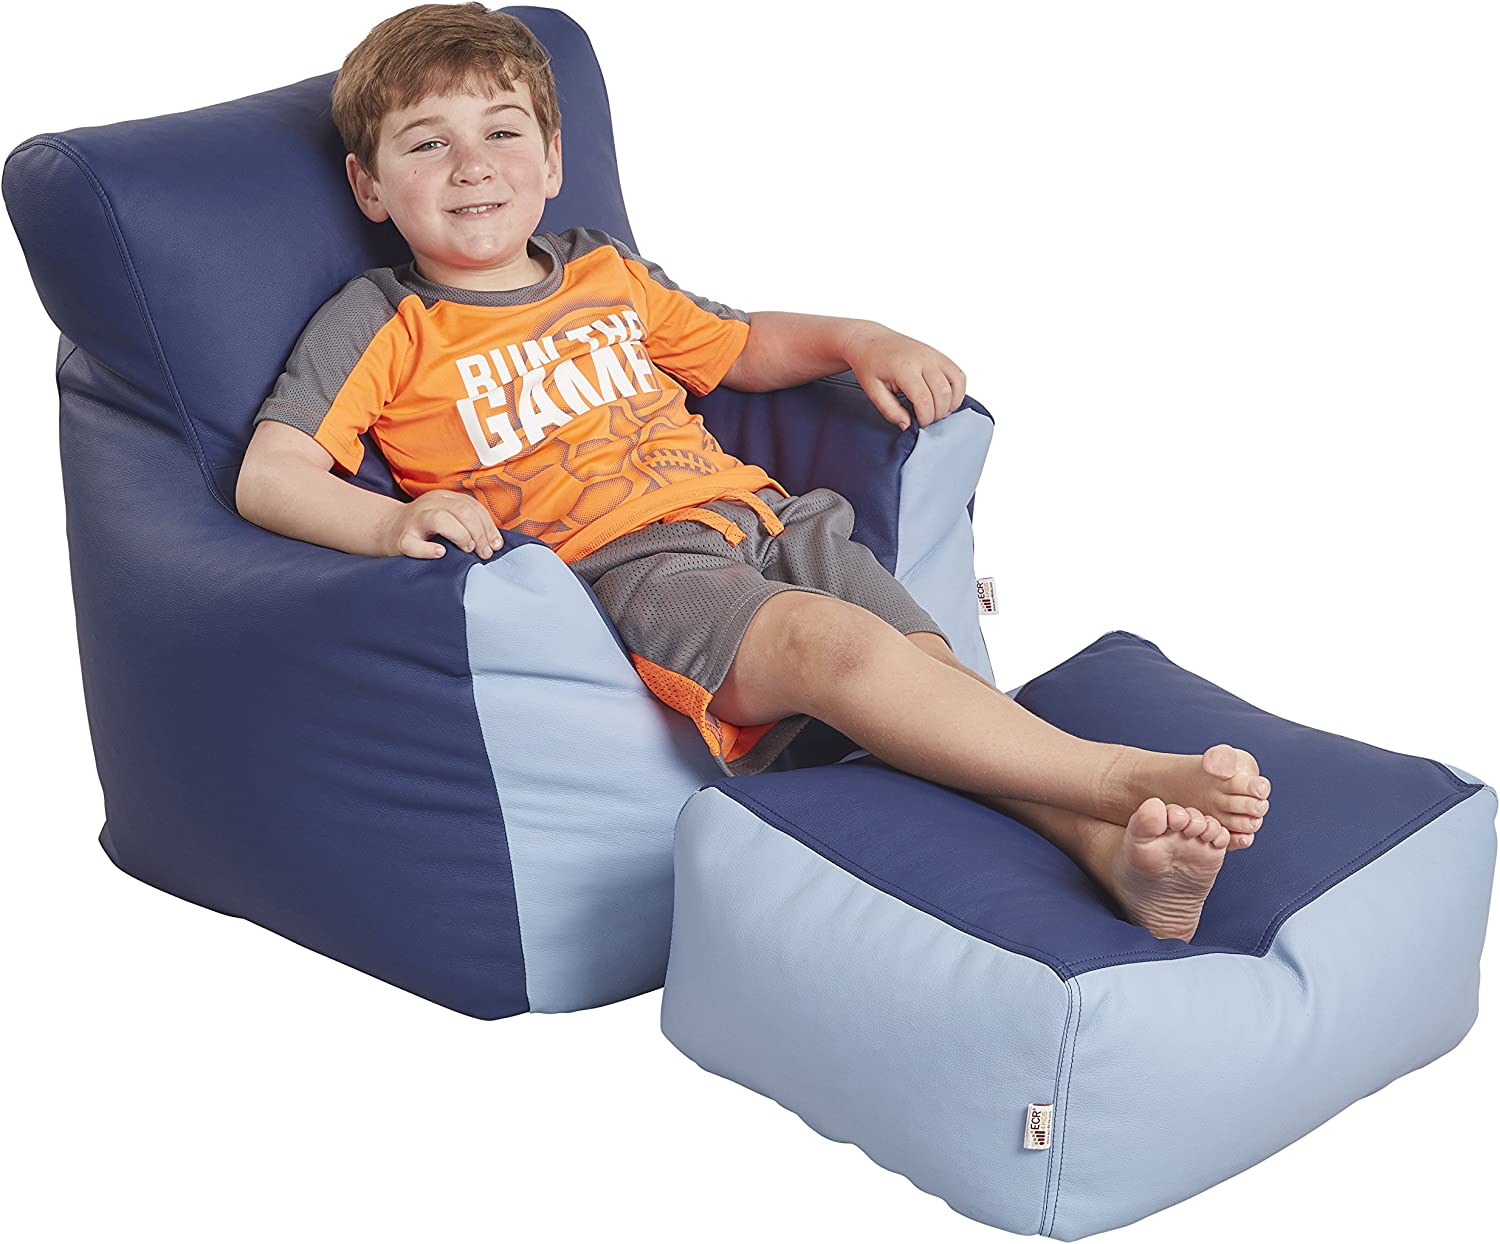 Top 9 Best Bean Bag Chairs For Kids (2020 Reviews & Guide) 9